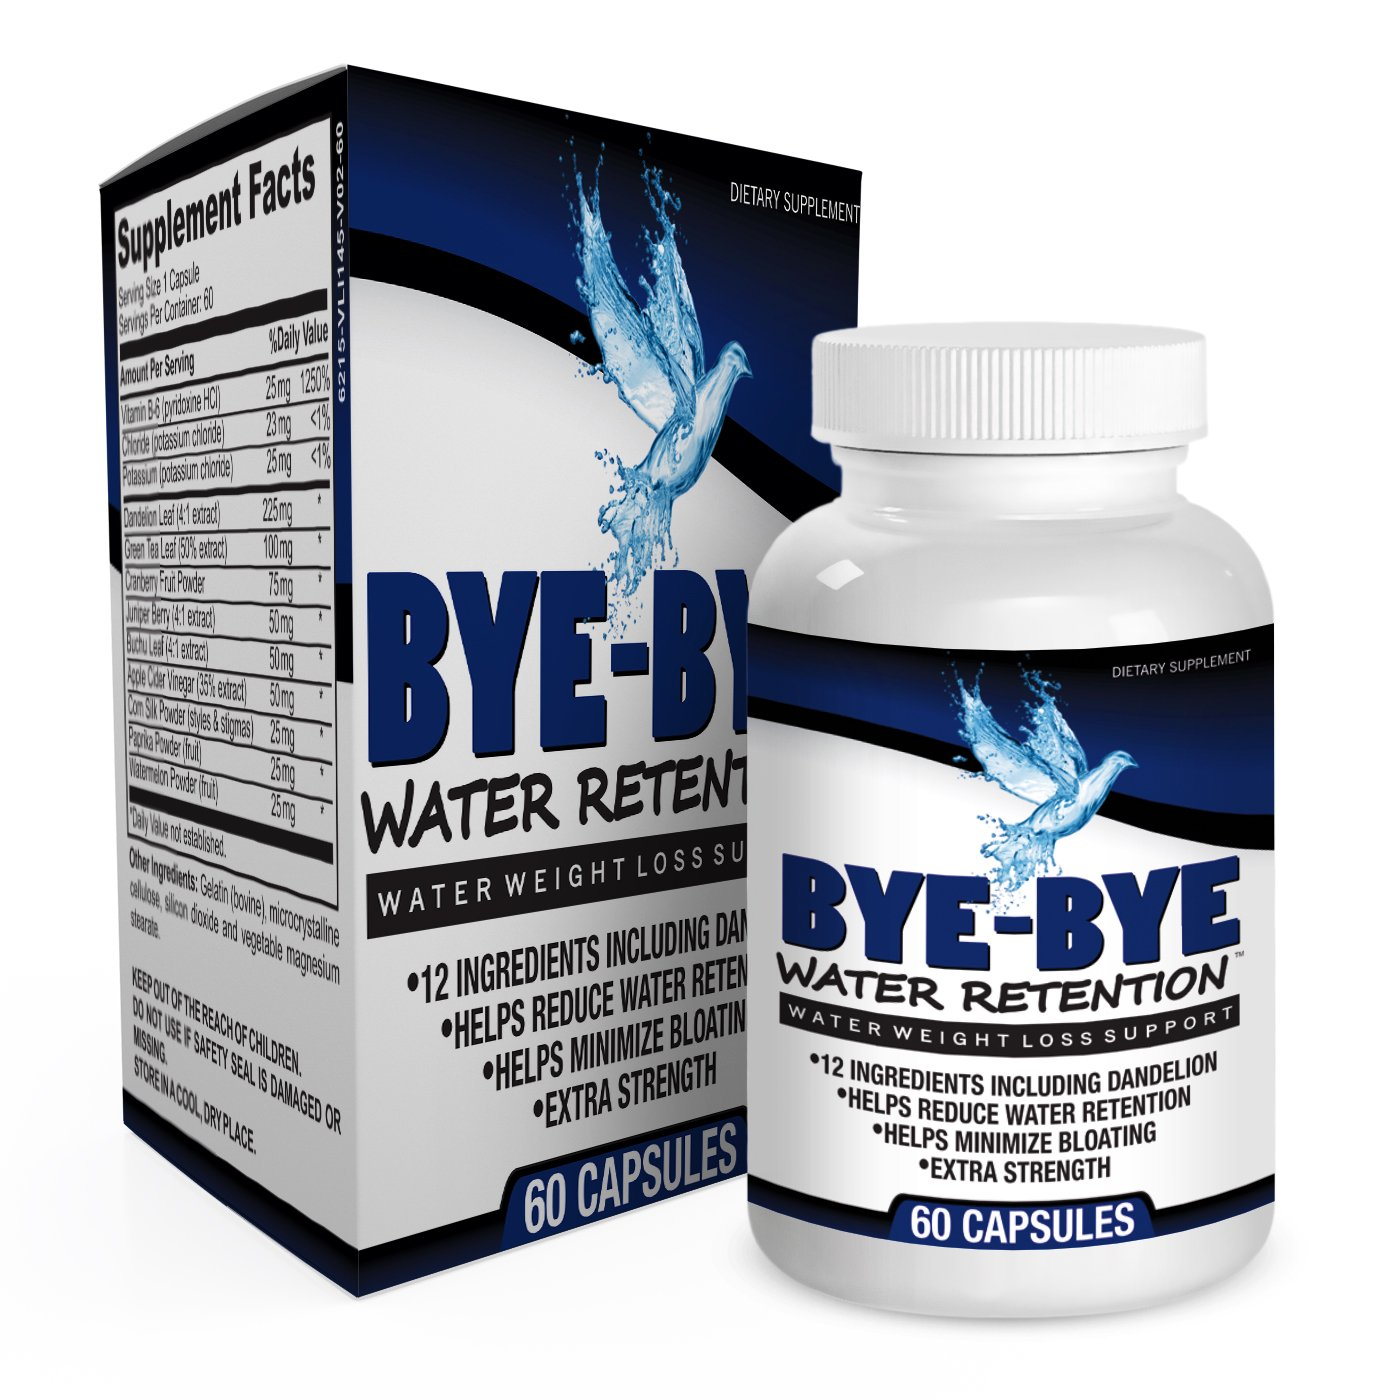 Natural Water Weight Loss Supplement Pills - Diuretic Supplements - Water Retention Relief - 60 Capsules by Elevate Recovery Supplements